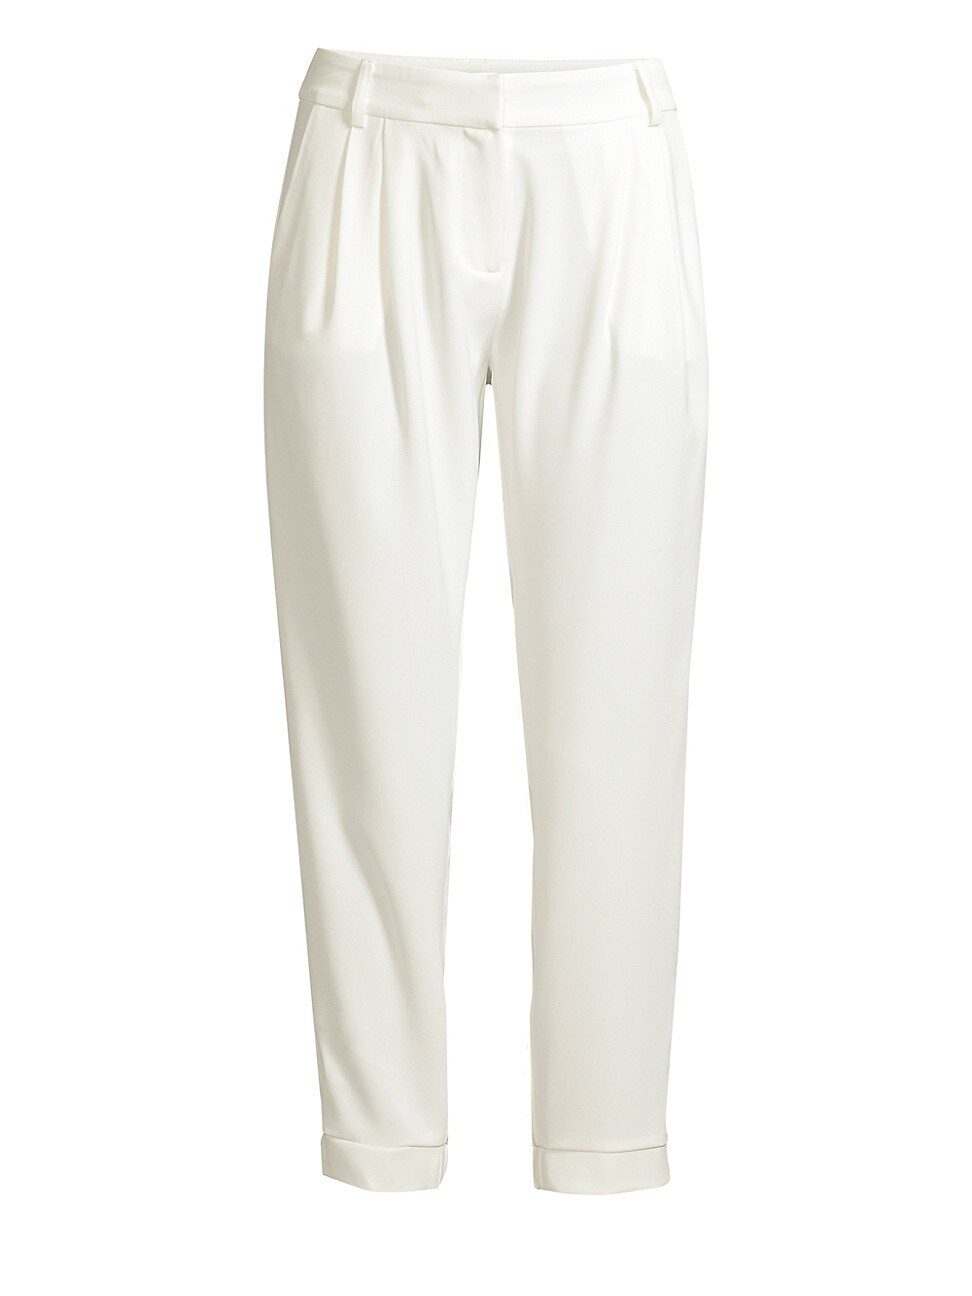 PARKER WOMEN'S MORGAN TAPERED TROUSERS